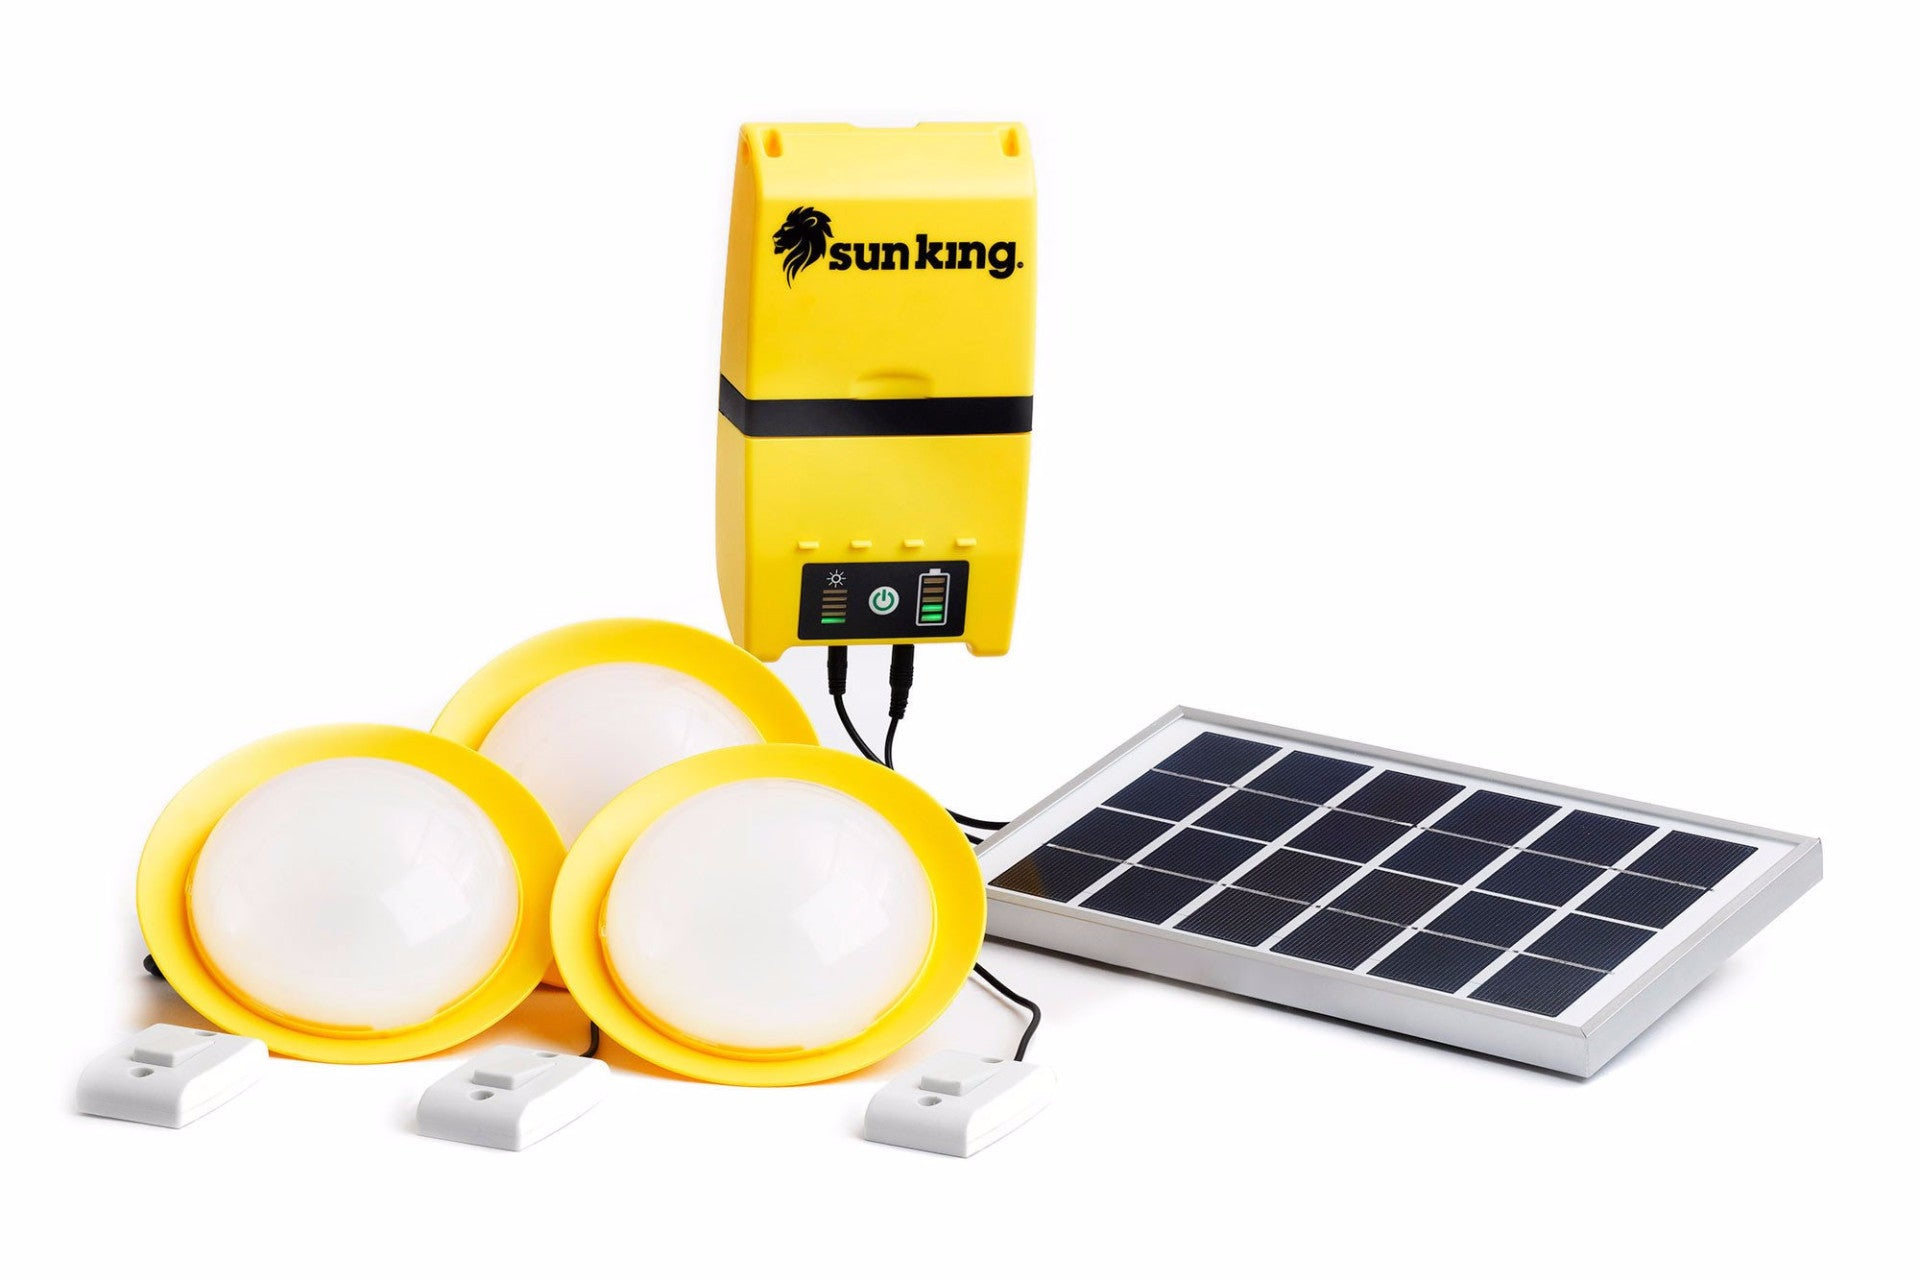 Beautiful Sun King Home   Solar Lights System, PowerBank, USB Charger Amazing Pictures